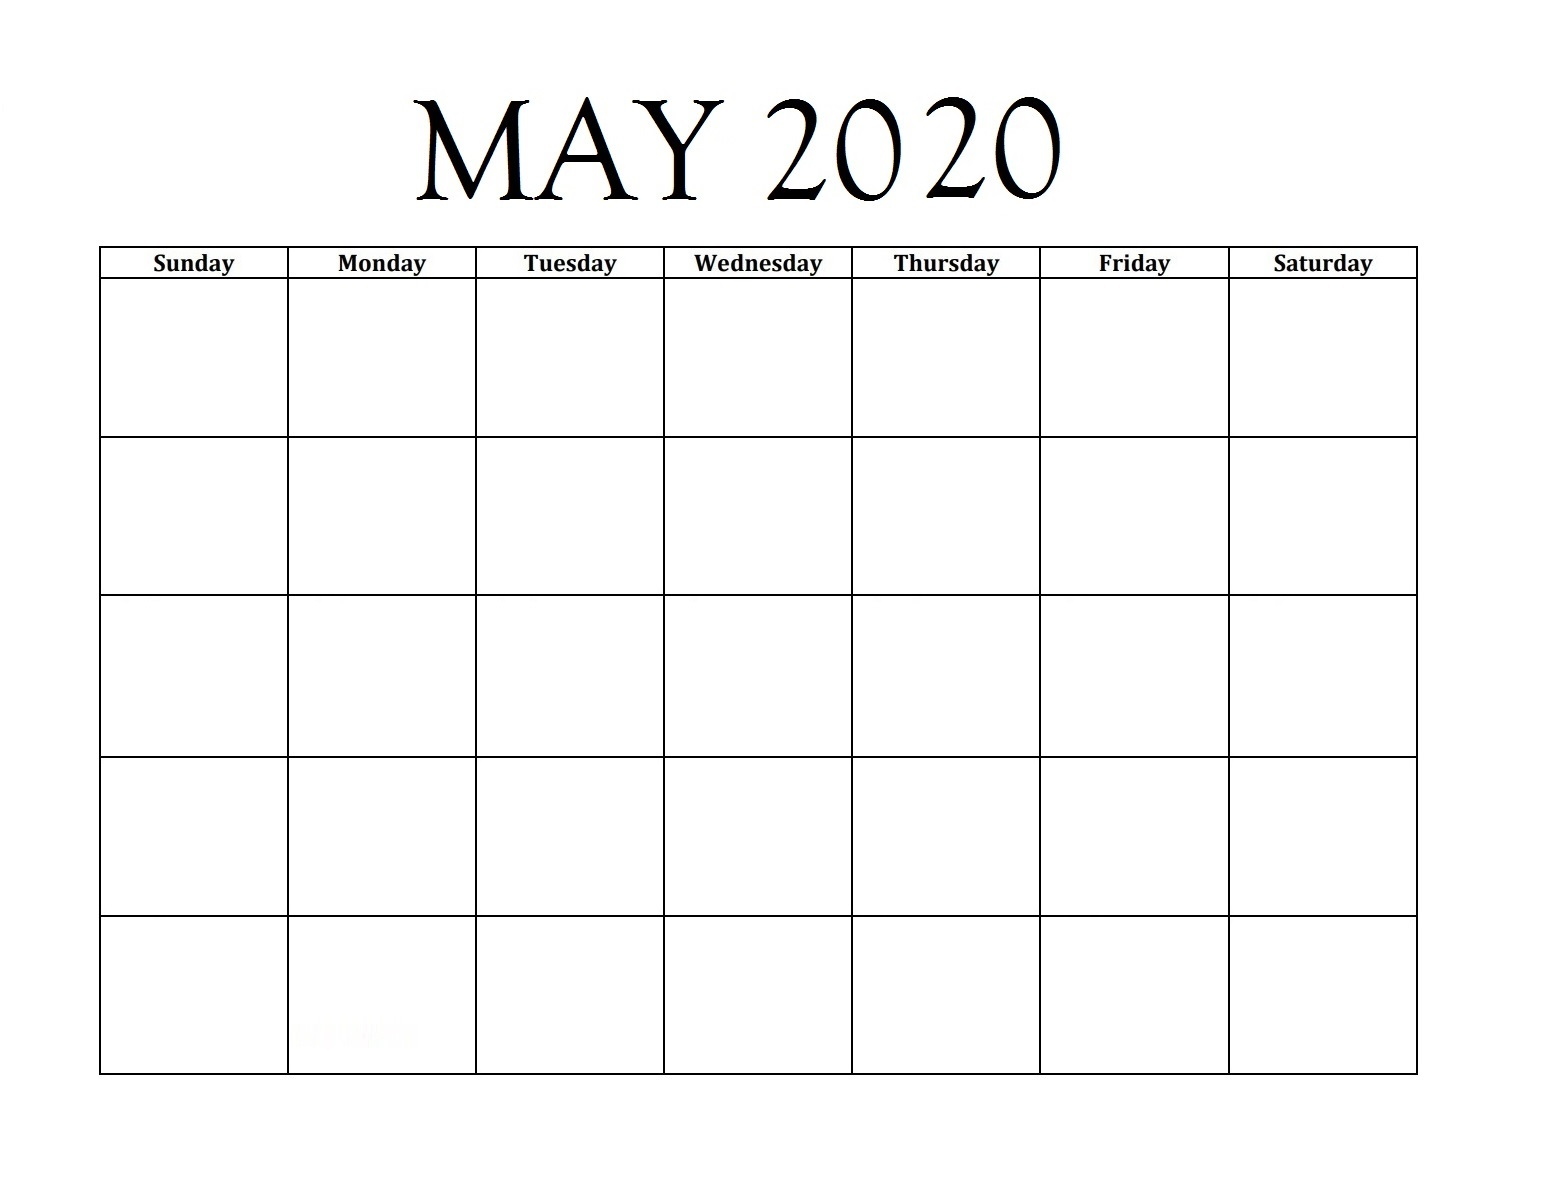 May 2020 Blank Desk Planner